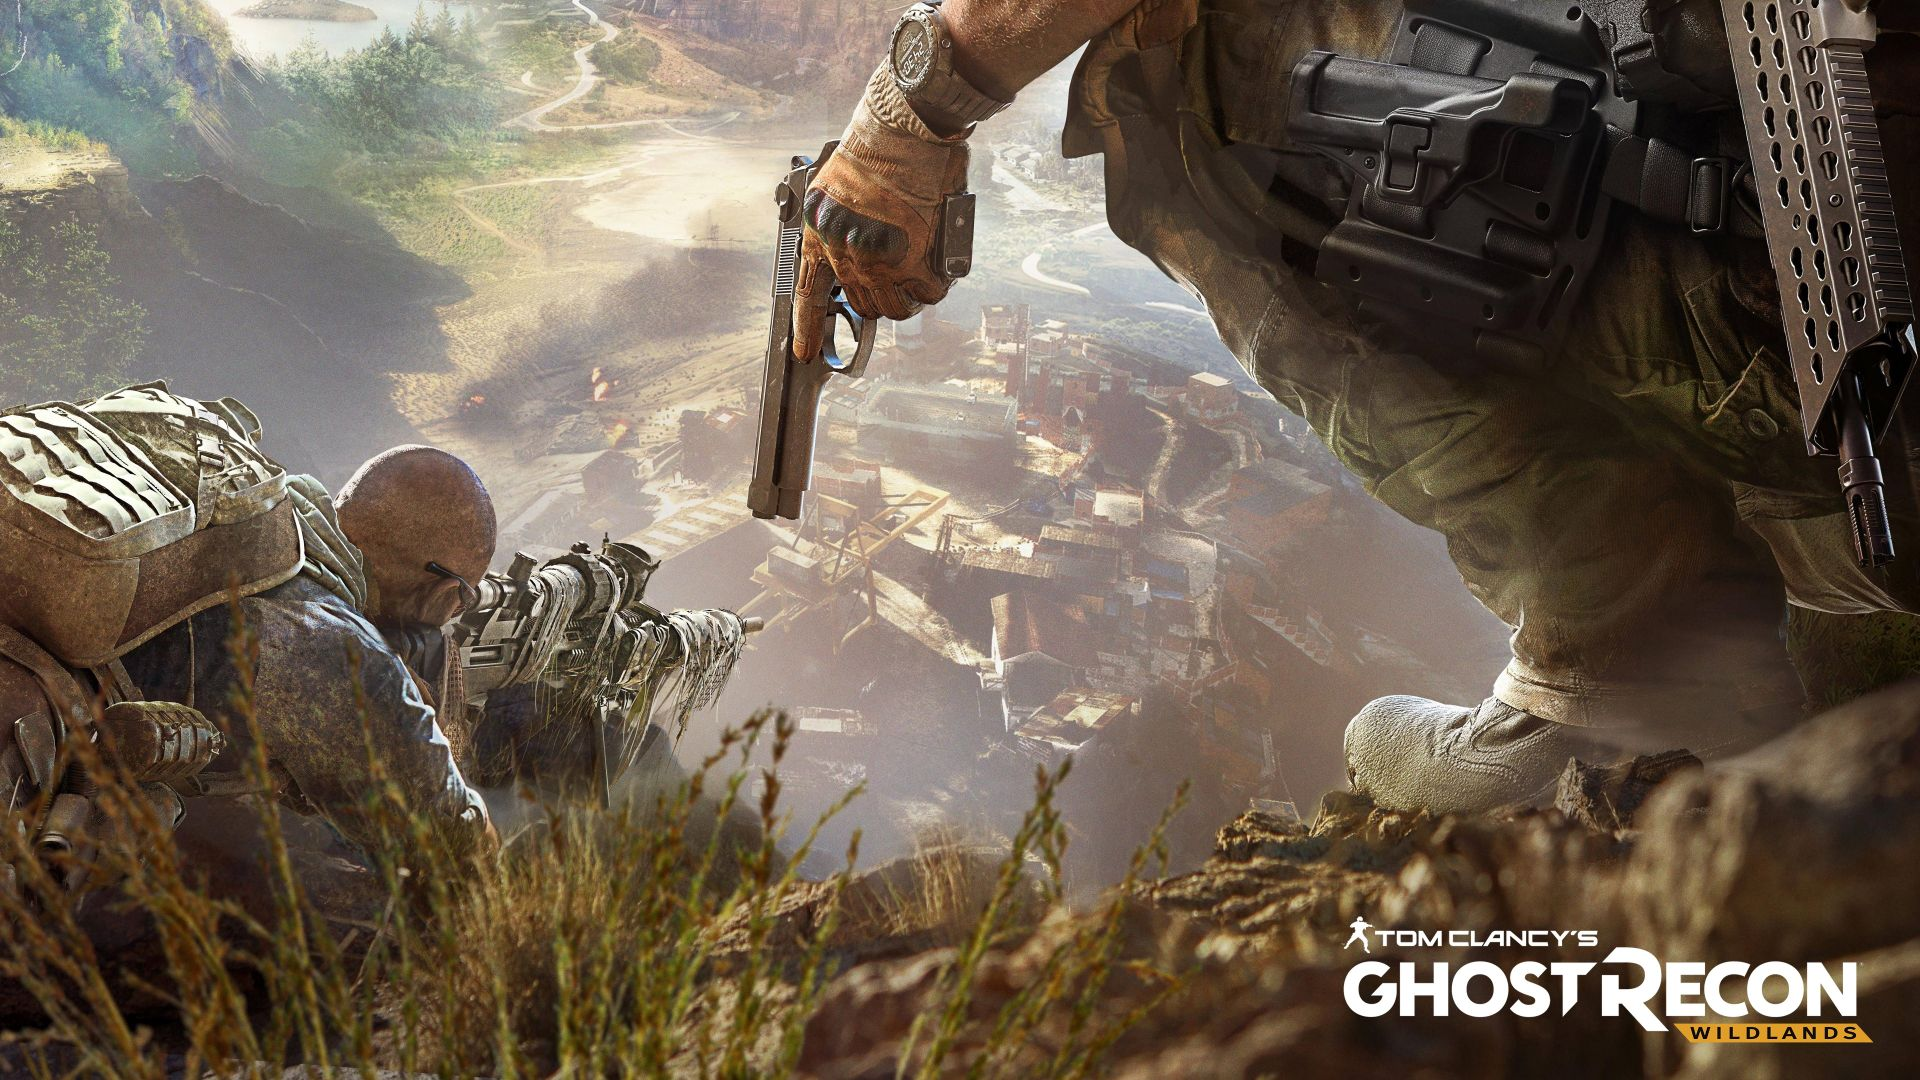 Tom Clancy's Ghost Recon Wildlands, Лучшие игры, игра, шутер, ПК, Xbox 360, PS3, Tom Clancy's Ghost Recon Wildlands, Best games, game, shooter, PC, Xbox 360, PS3 (horizontal)